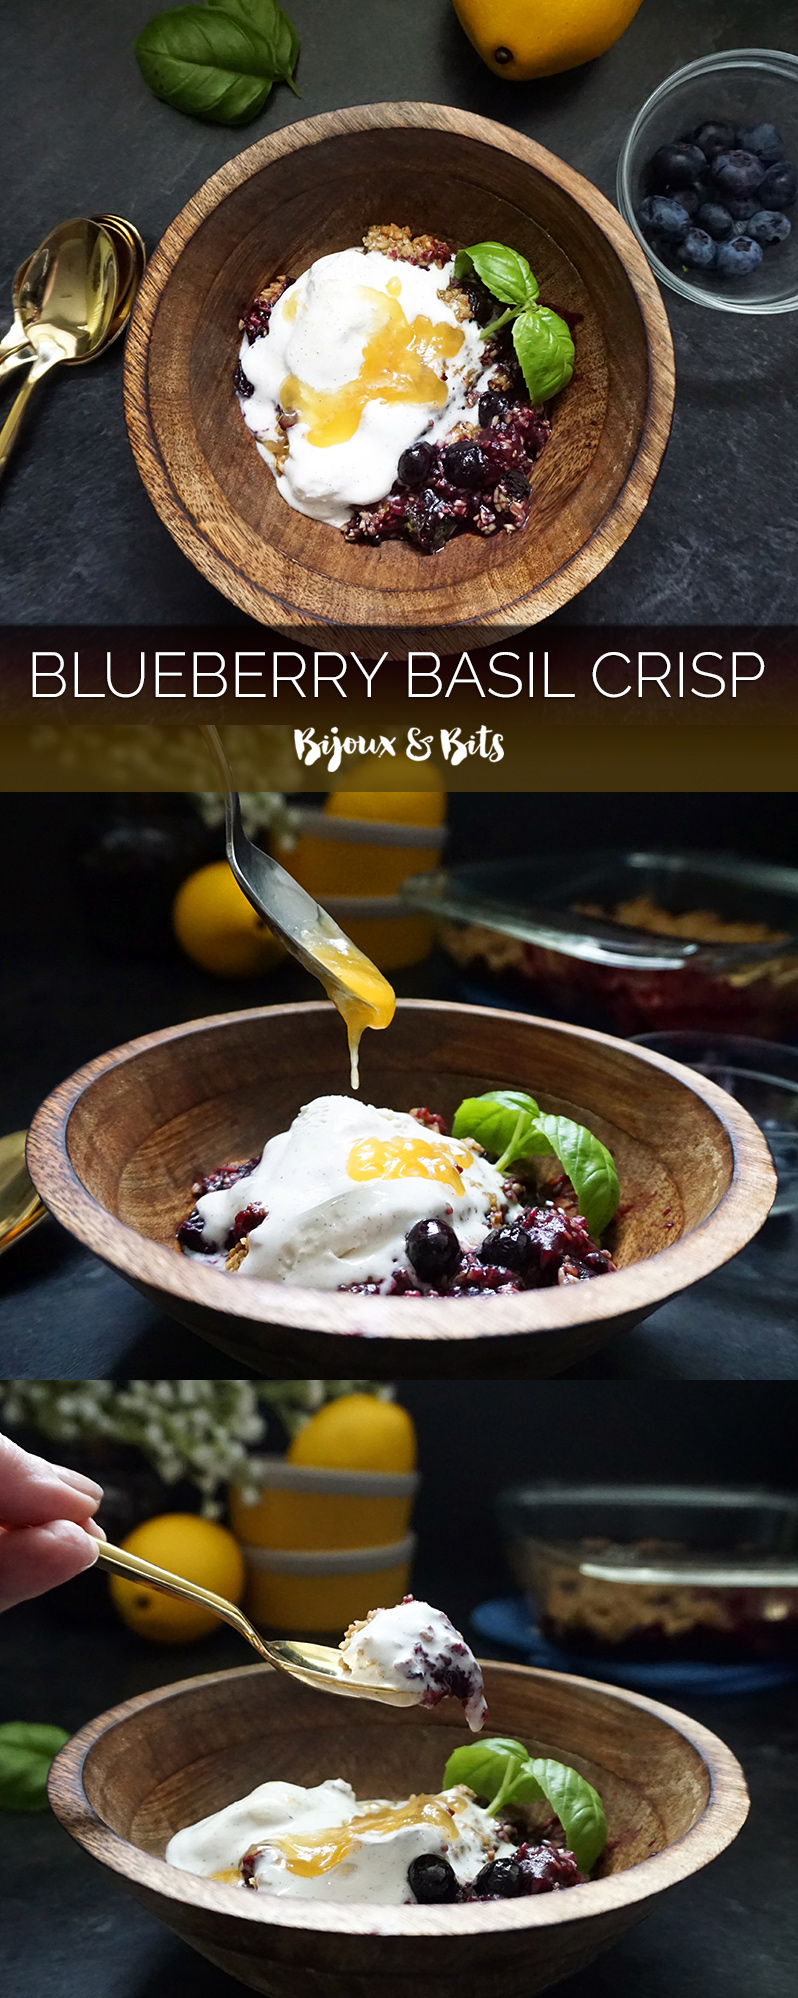 Blueberry basil crisp with lemon curd drizzle from @bijouxandbits #blueberries